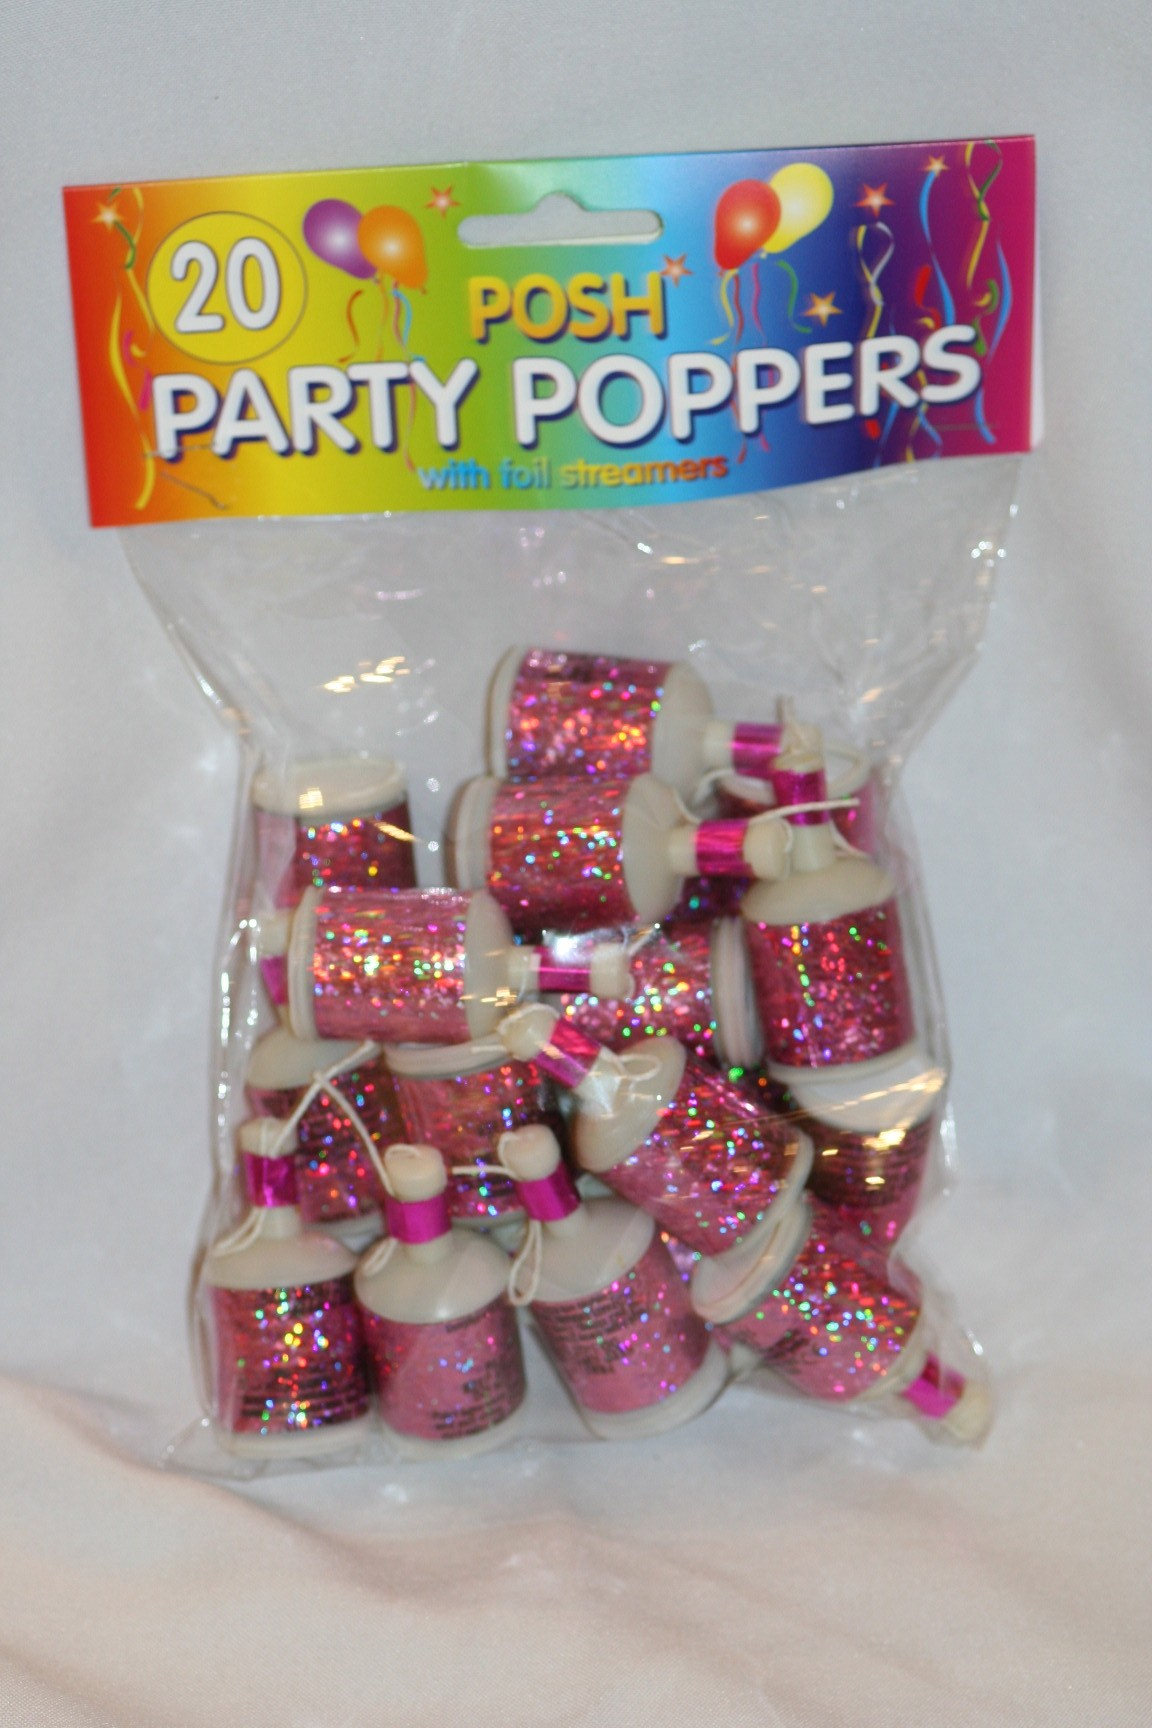 Party poppers pink bag masks cutouts other